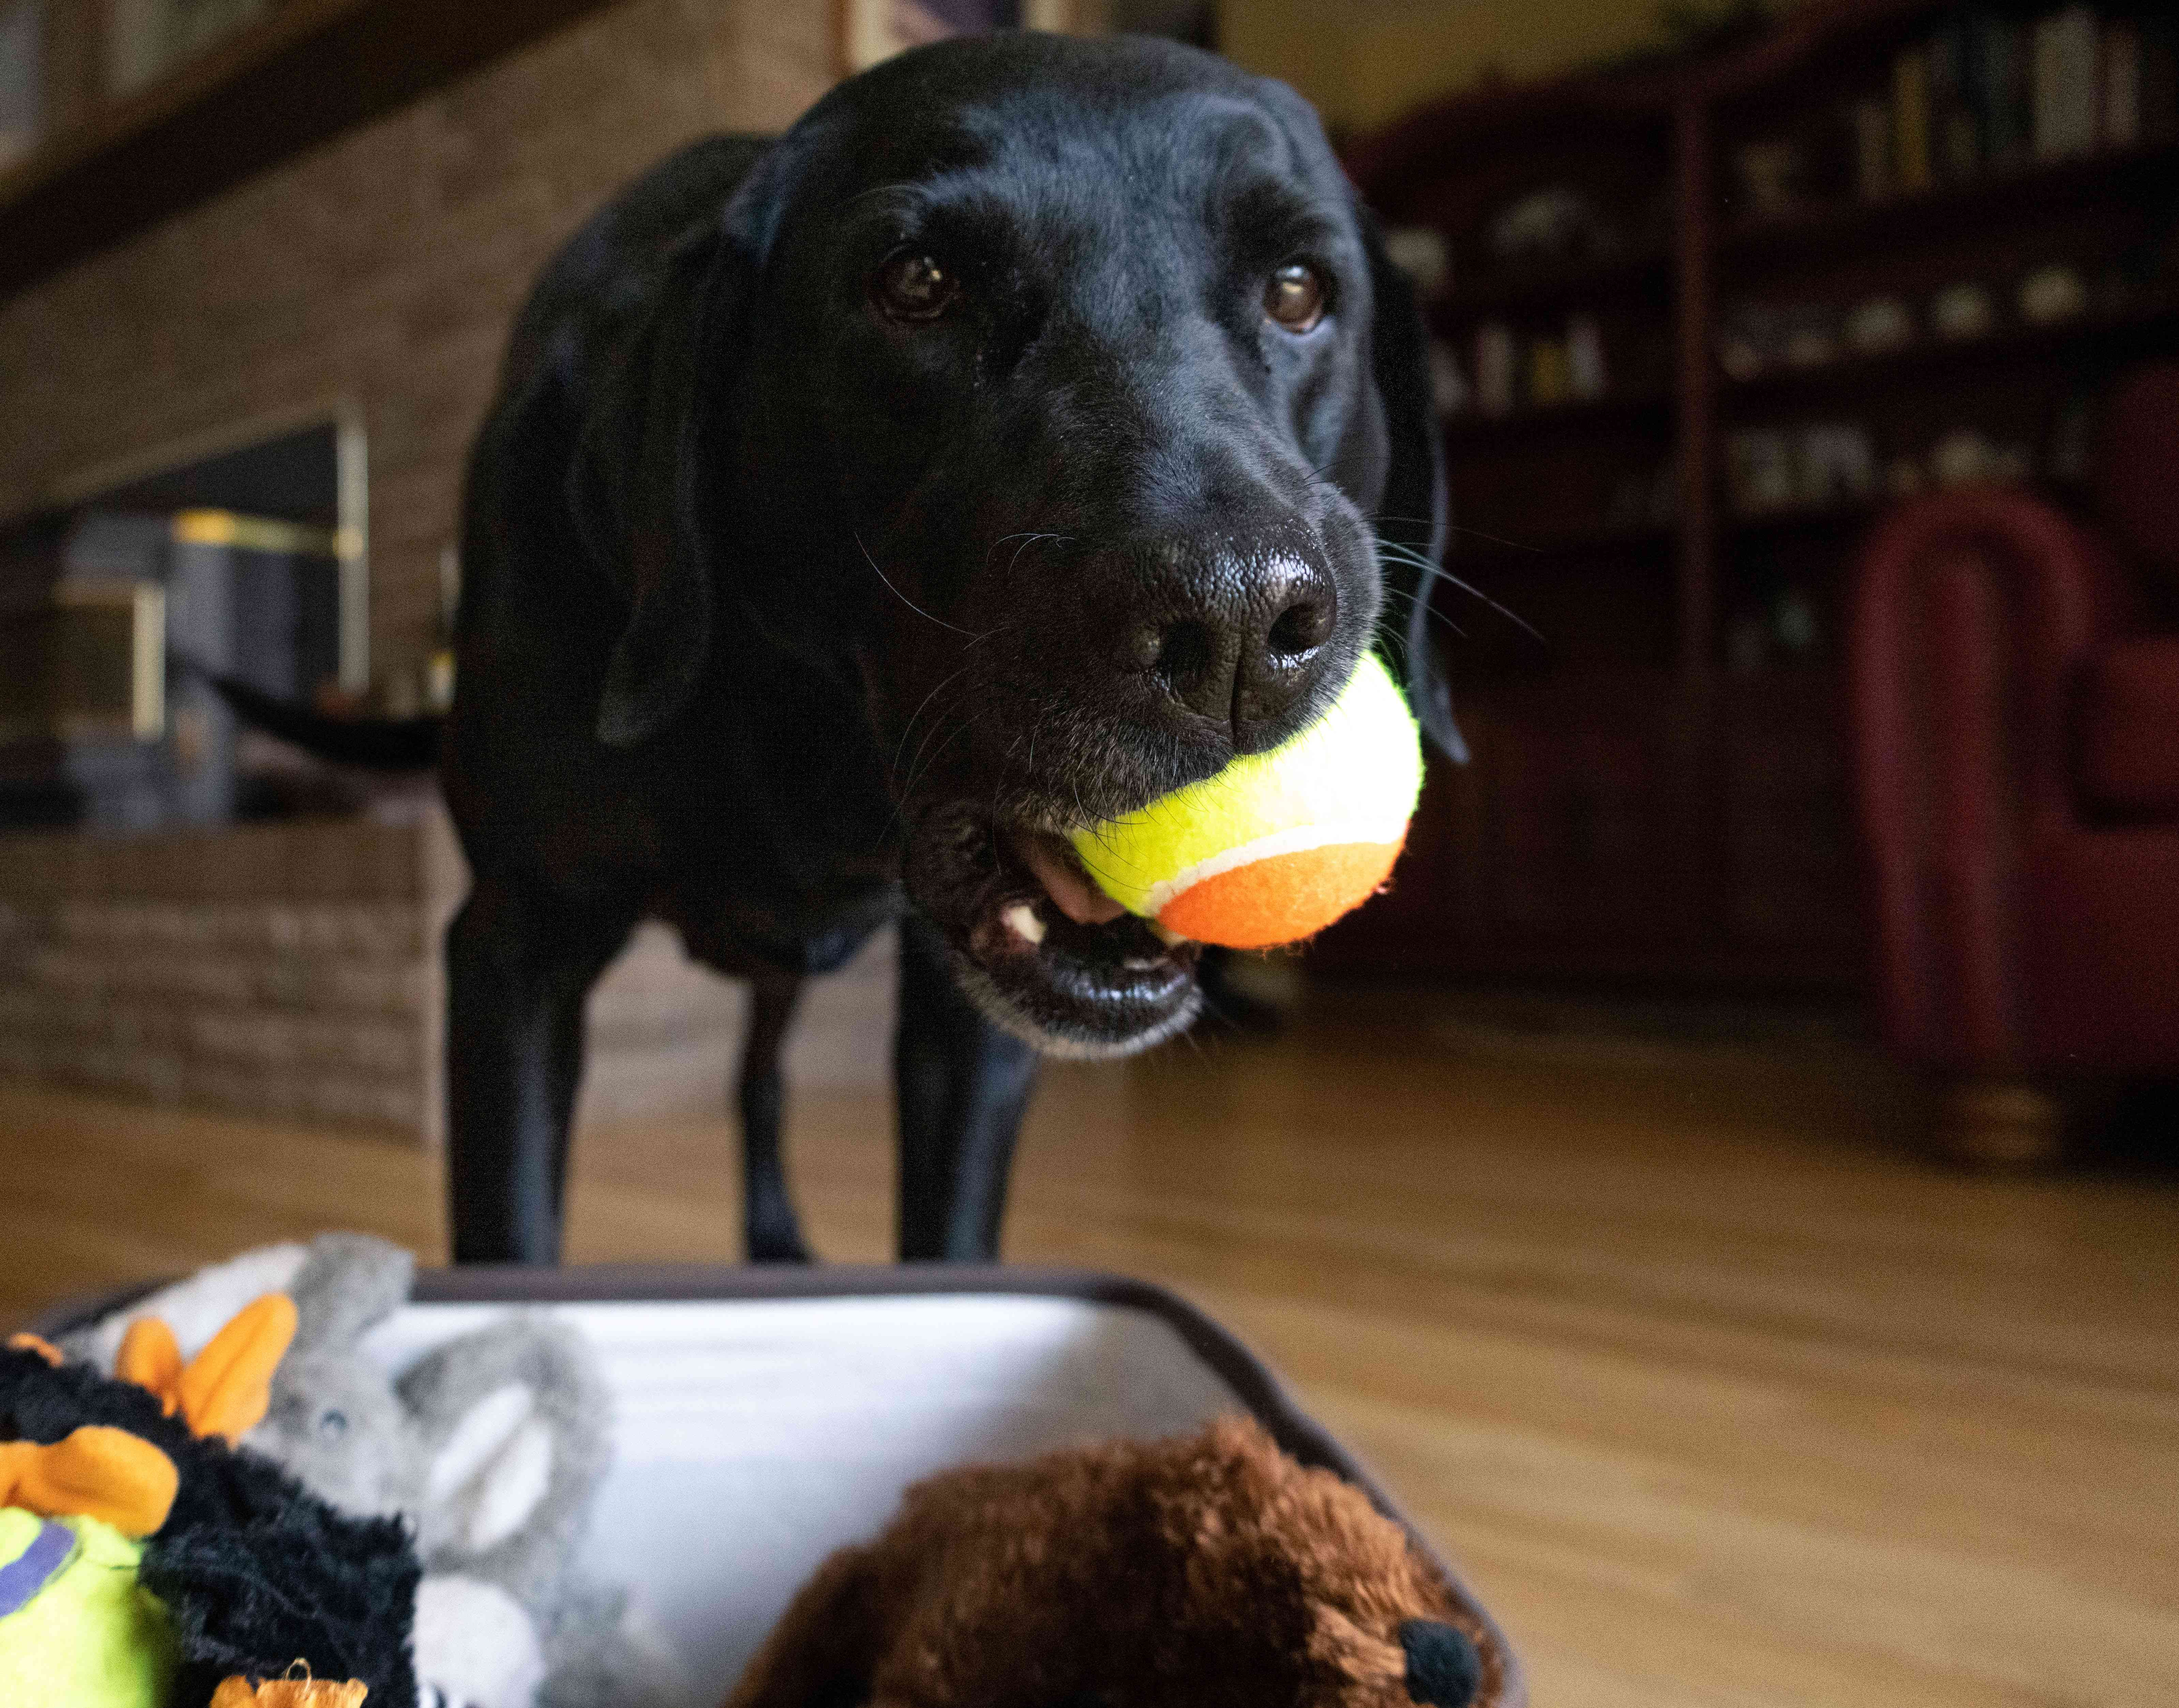 older black dog brings ball over in mouth to put away in toy chest